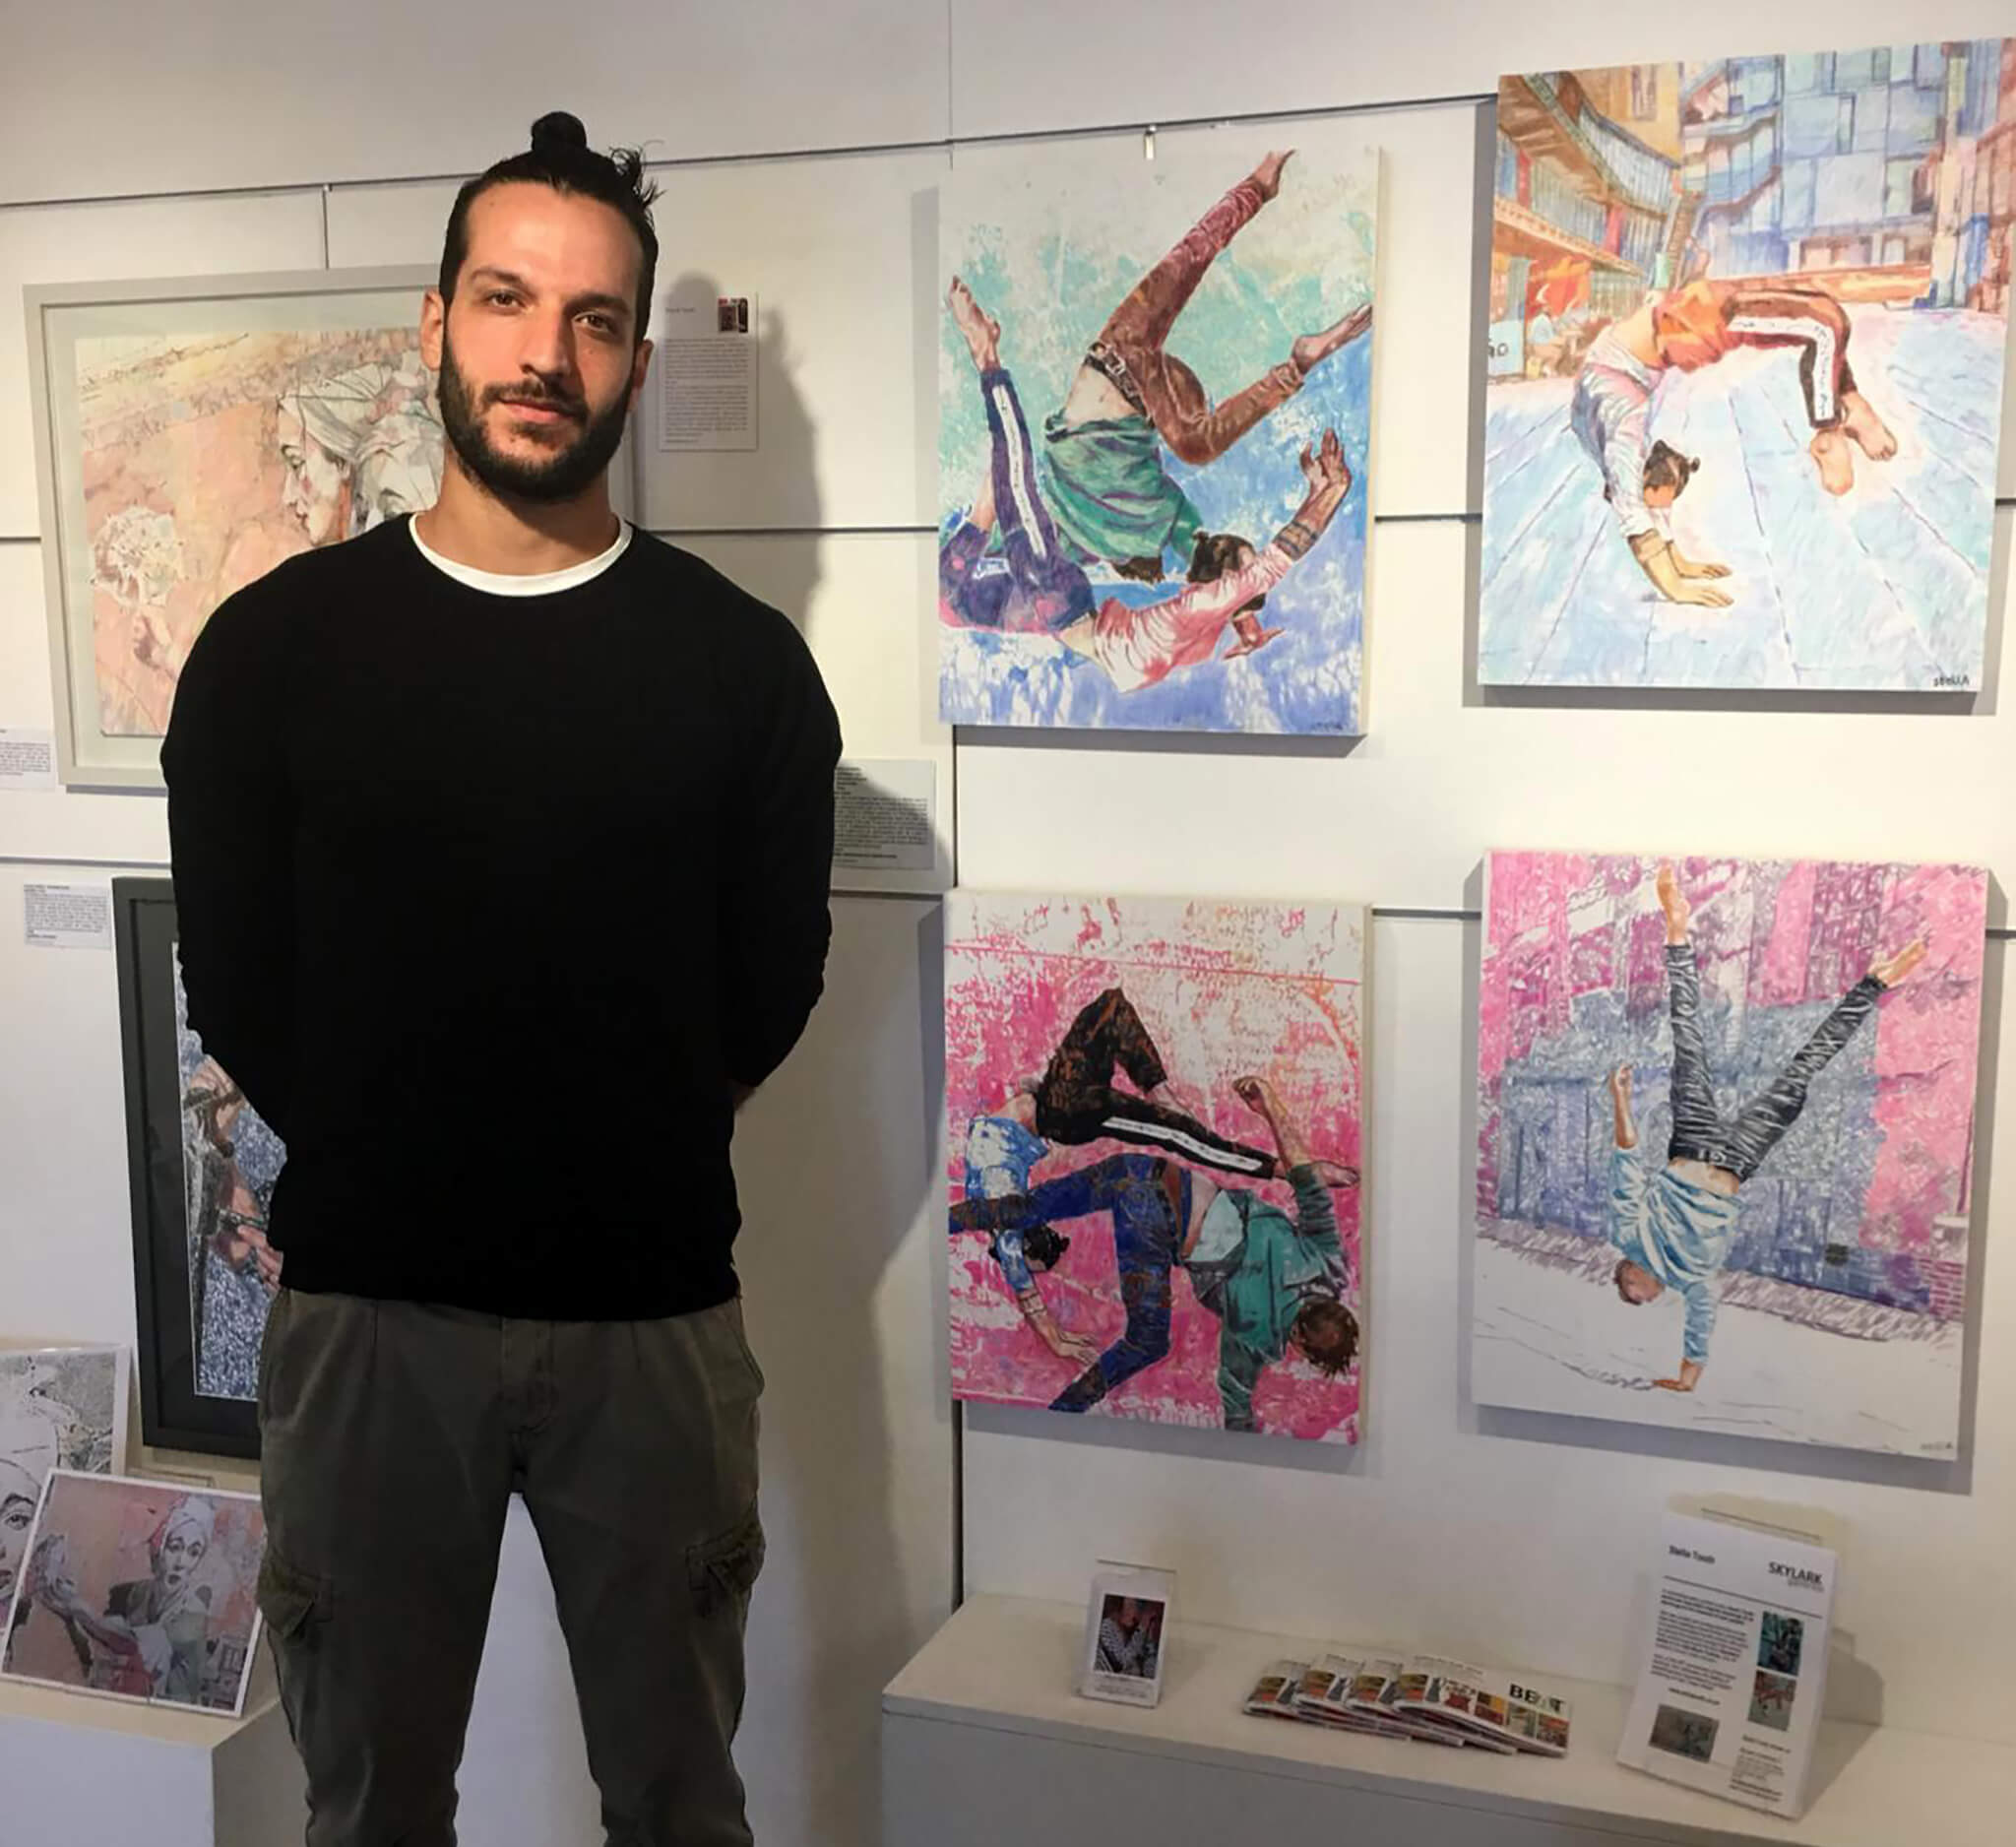 Acrobat Manuele d'Aquino at Skylark Galleries with Stella Tooth's pencil on cradled gesso panel portrait of him.